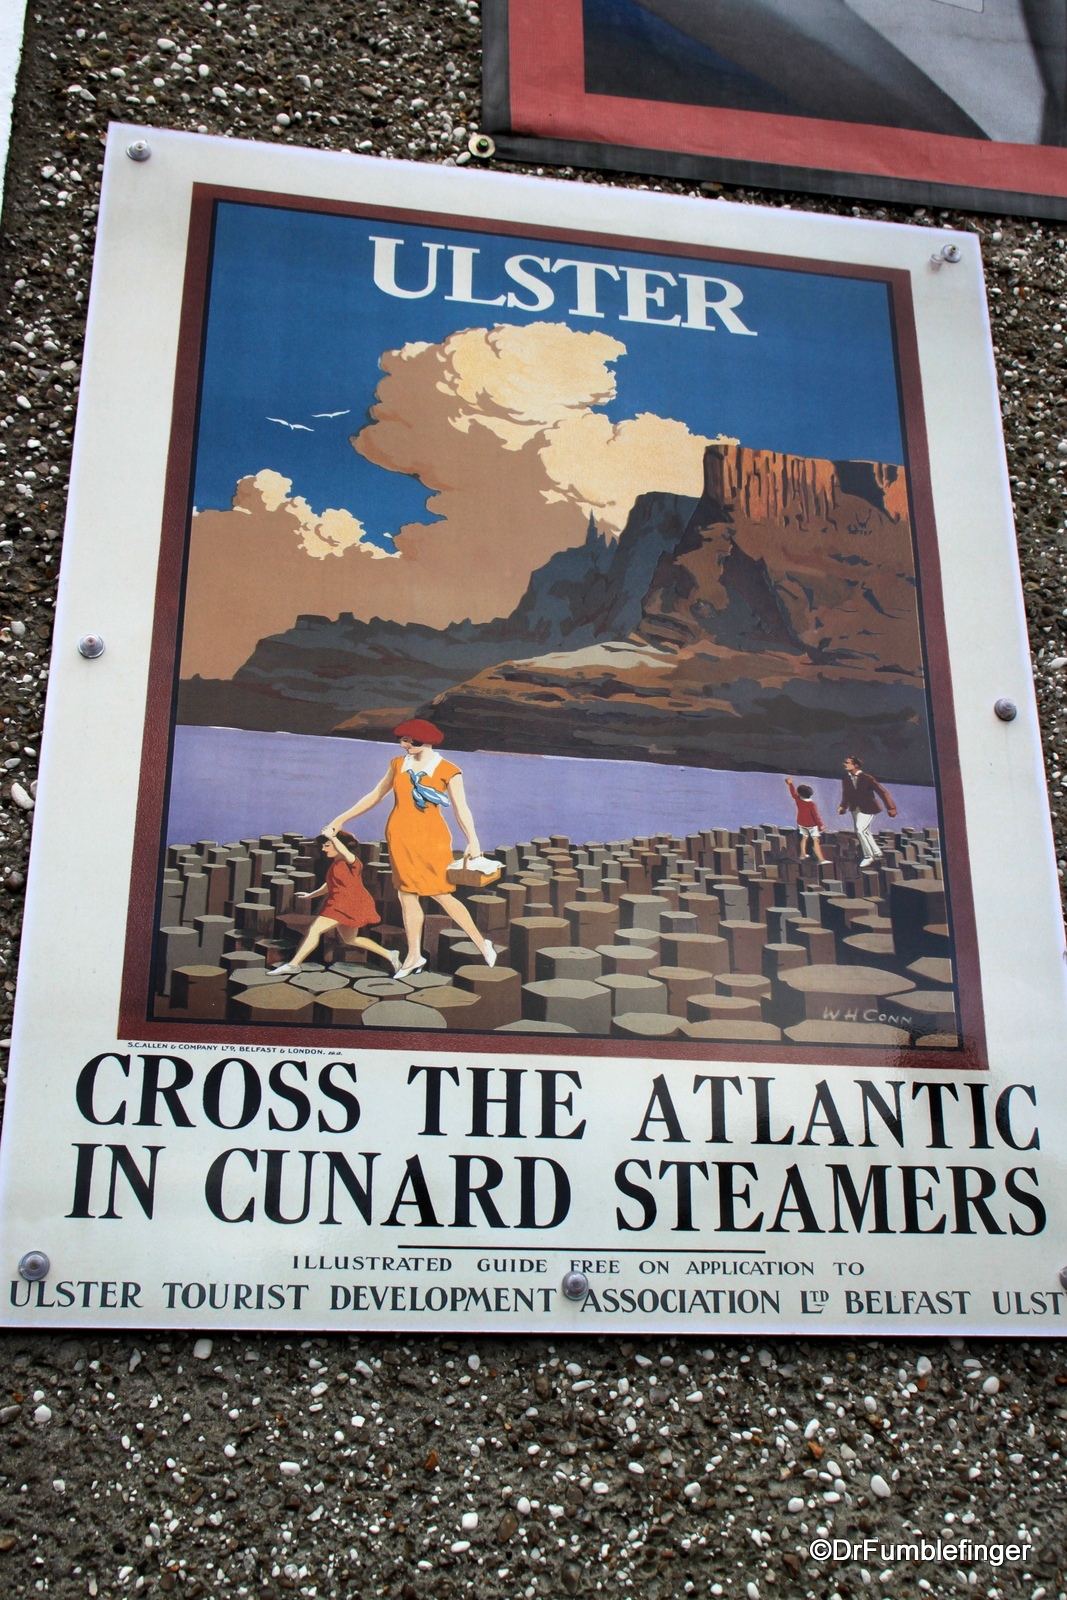 Old Giant's Causeway promotional material